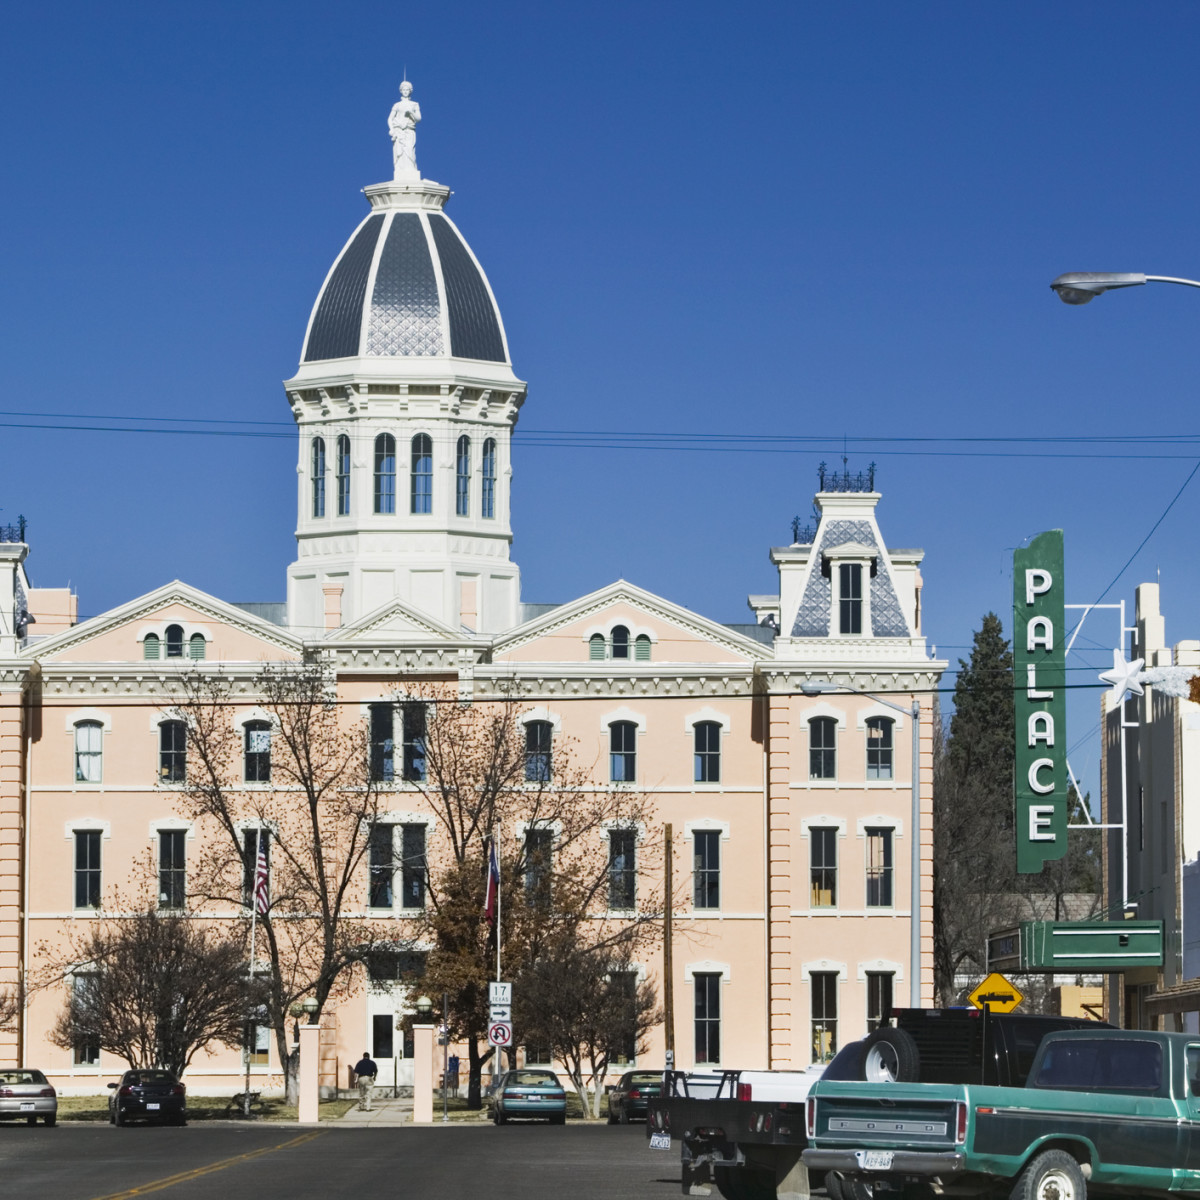 Downtown Marfa Presidio County Courthouse